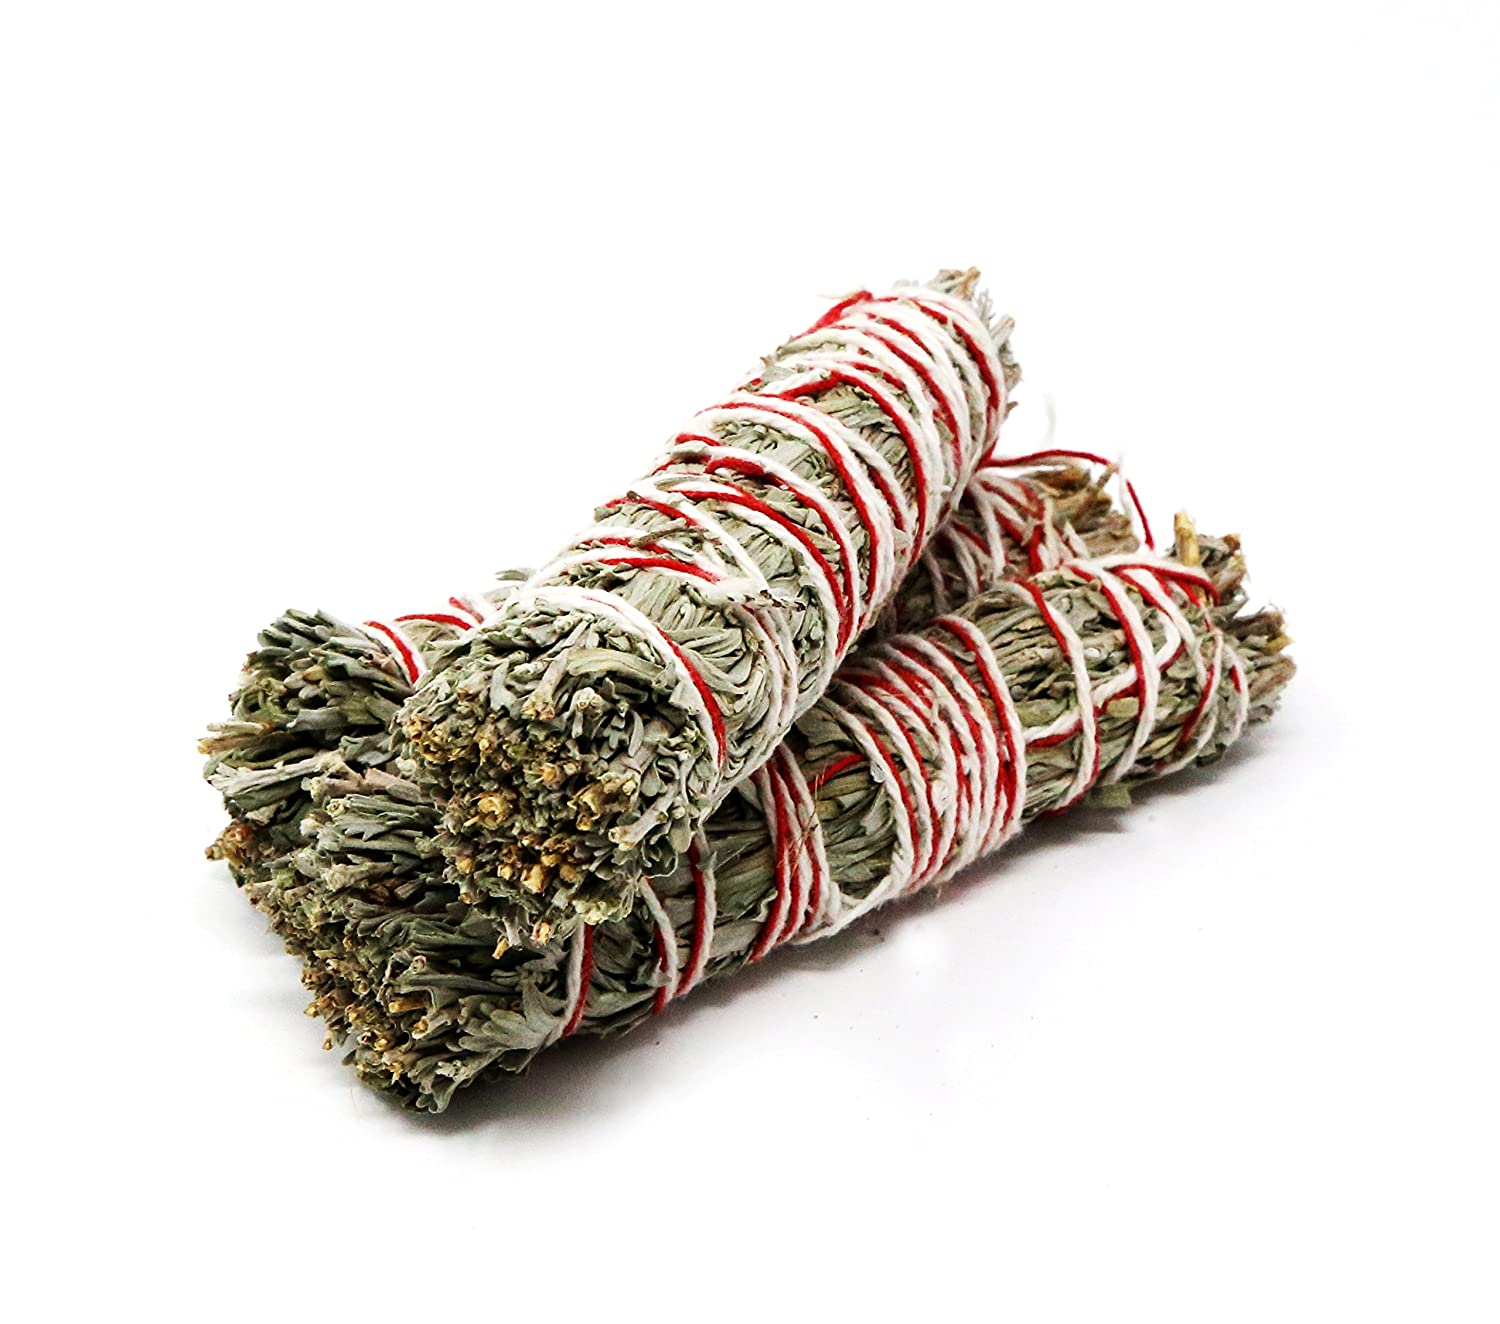 for Cleansing 4 Inches Saint Terra Pack of 3 Mountain Sage or Desert Mugwort Smudge Stick and New Energy. Strength